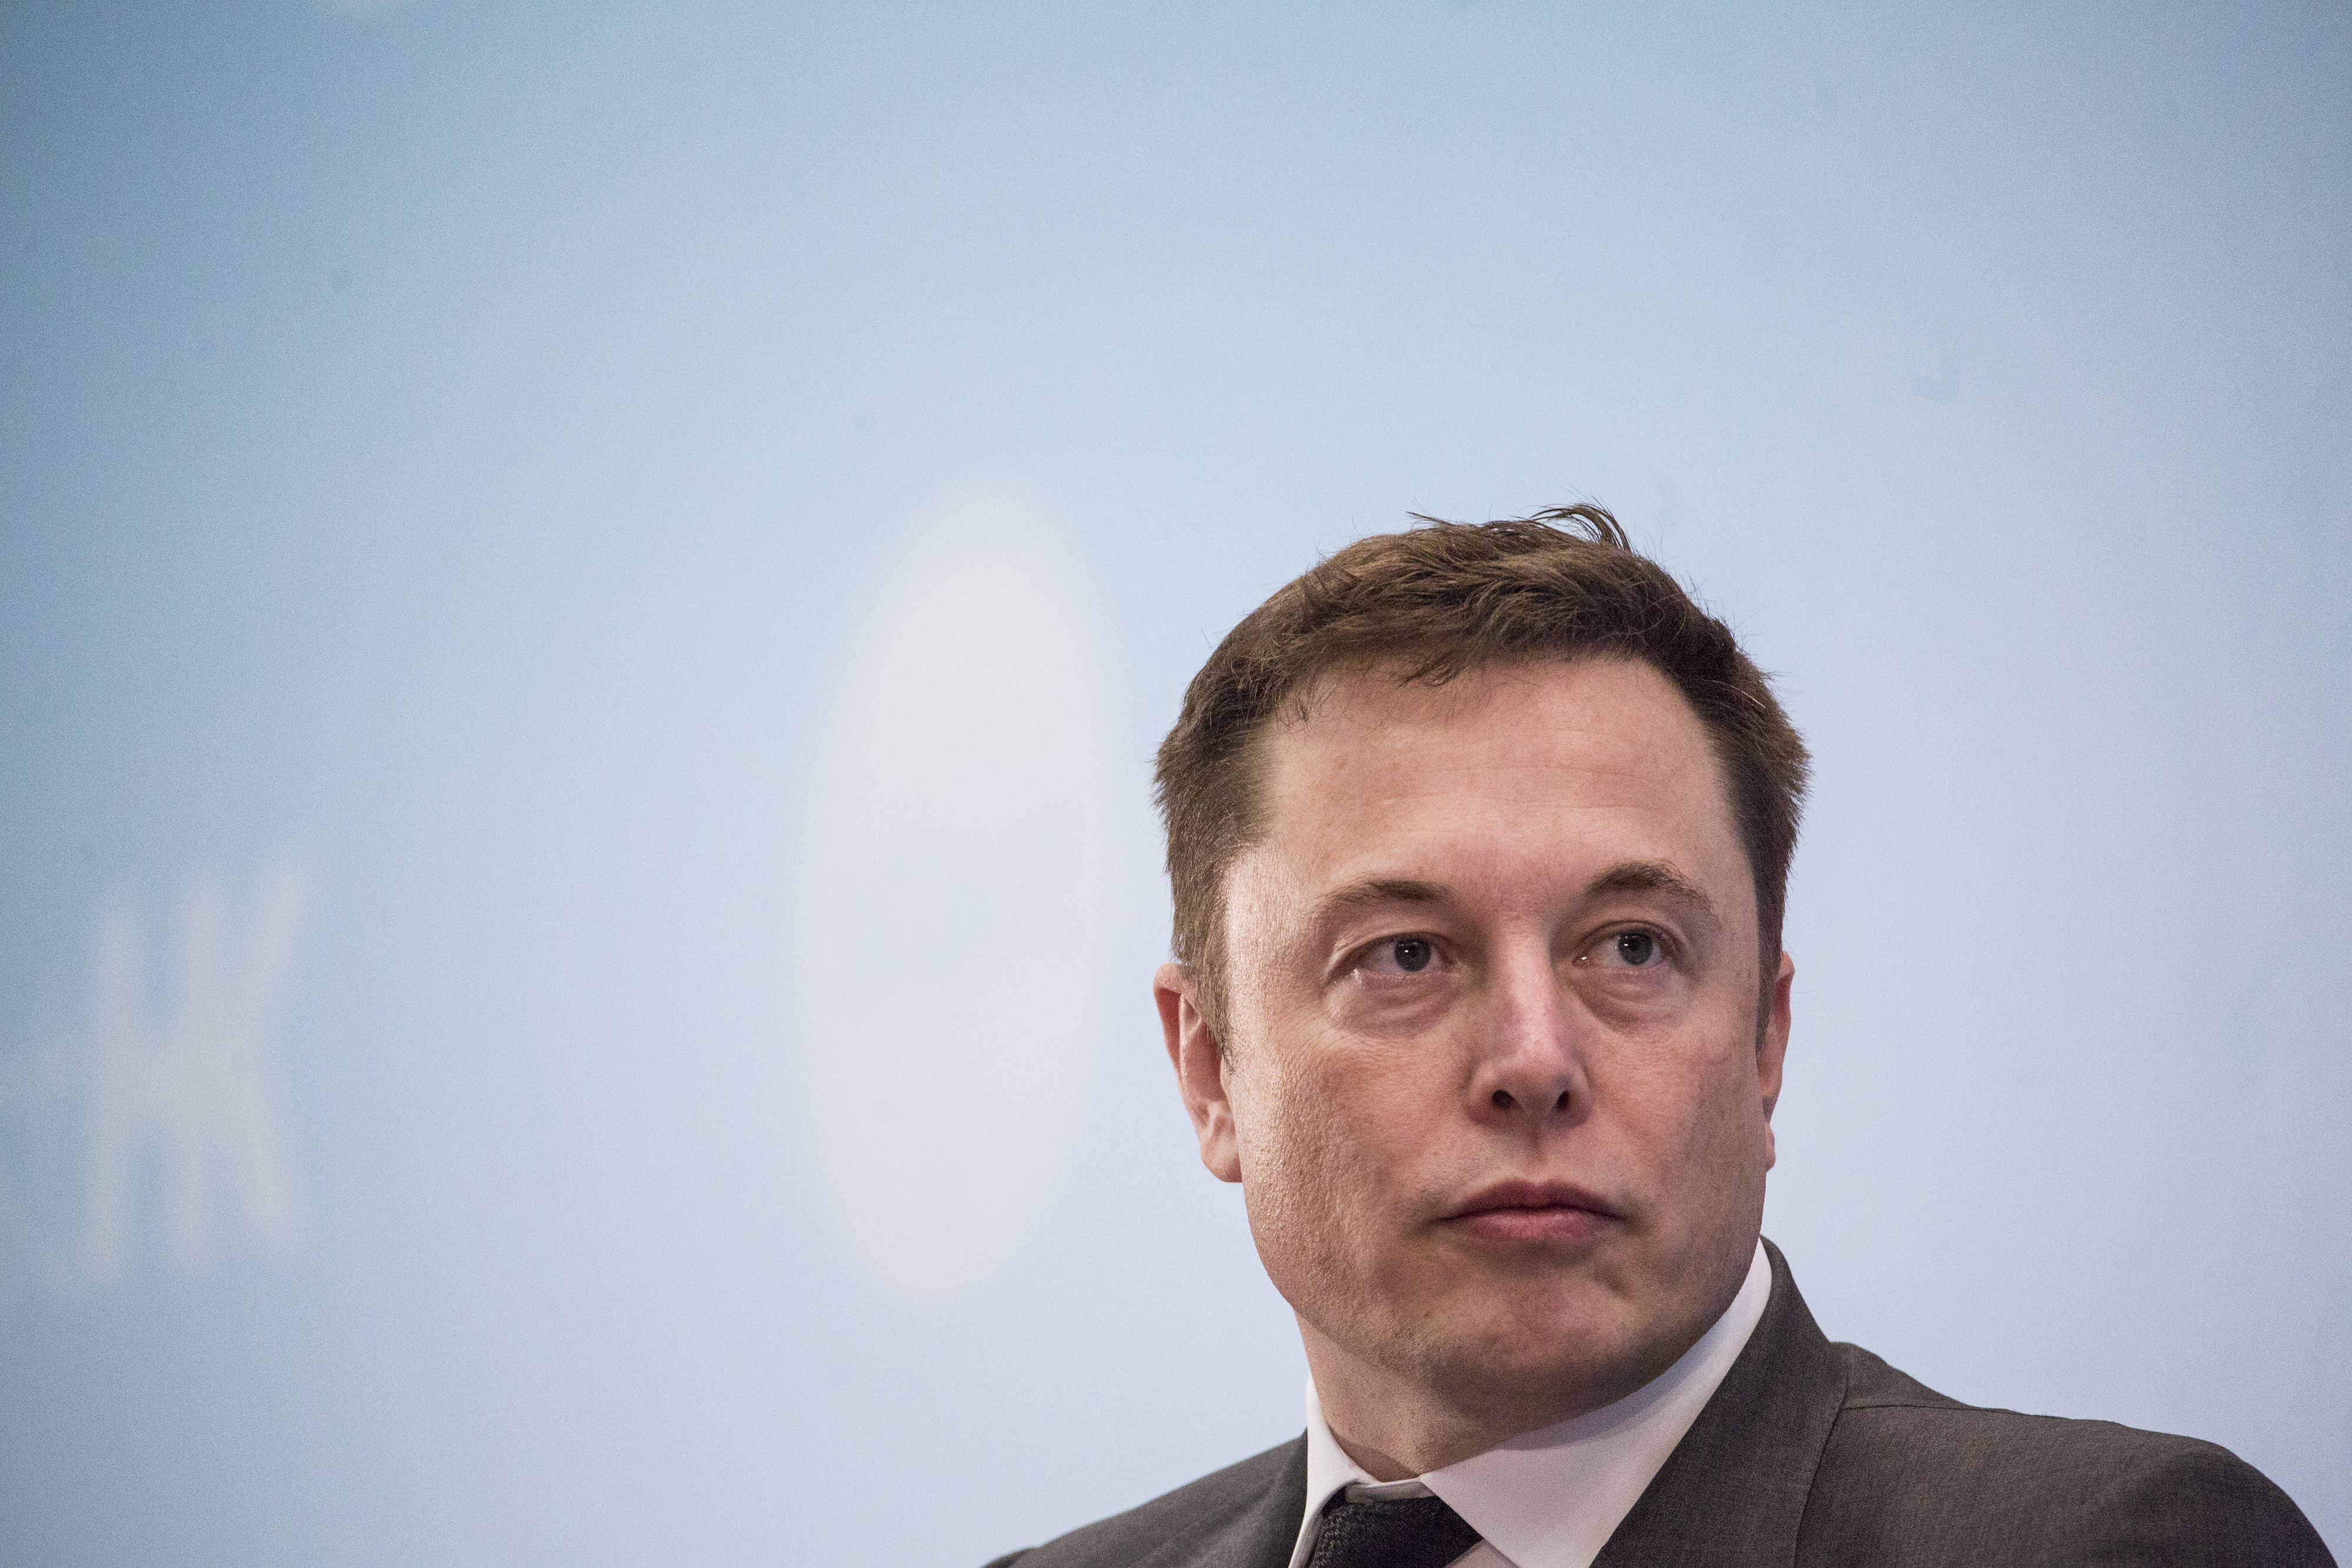 Billionaire Elon Musk, chief executive officer of Tesla Motors Inc., listens during the StartmeupHK Venture Forum in Hong Kong, China, on Tuesday, Jan. 26, 2016. Tesla is looking for a Chinese production partner but is  still trying to figure that out,  Musk said. Photographer: Justin Chin/Bloomberg via Getty Images